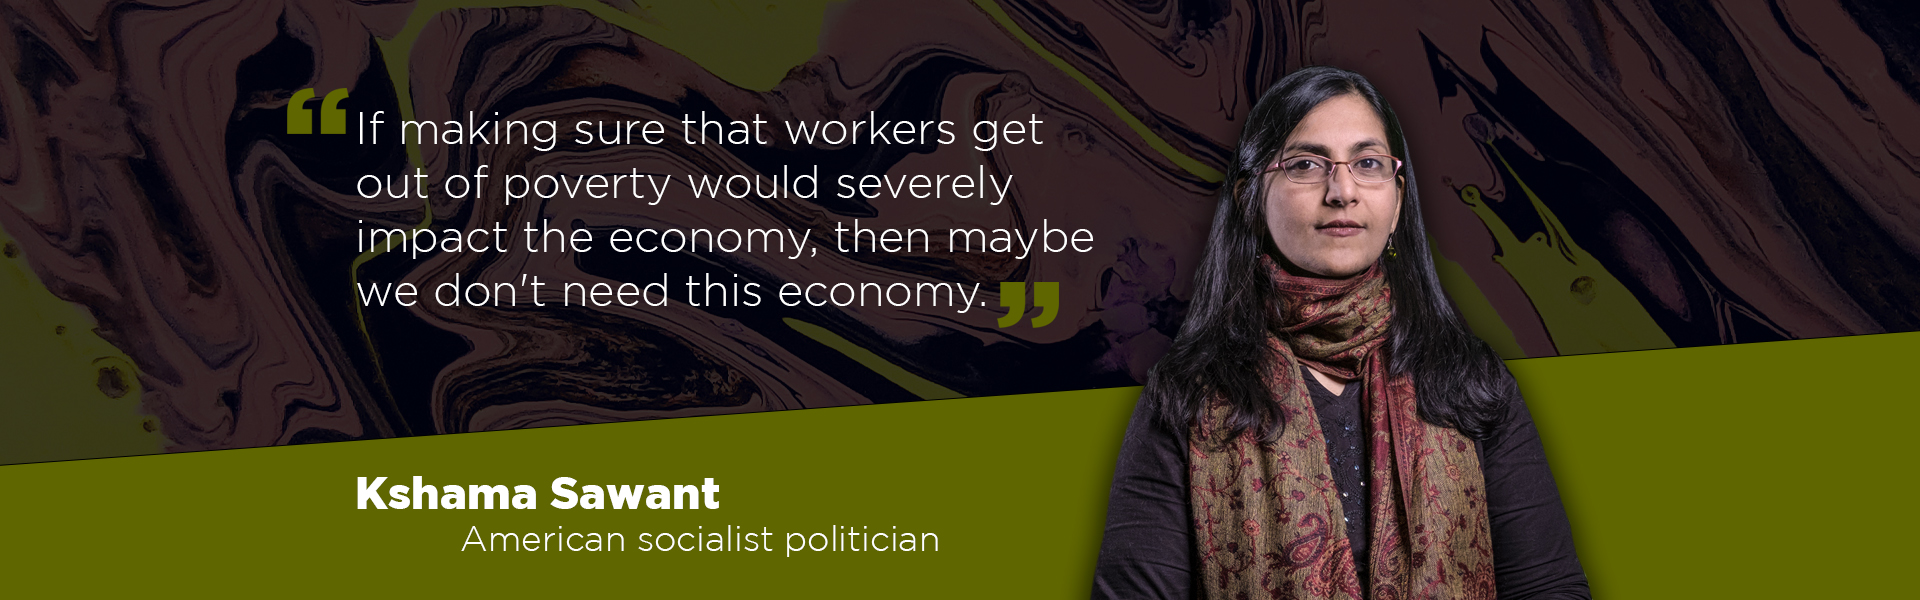 """""""If making sure that workers get out of poverty would severely impact the economy, then maybe we don't need this economy."""" Kshama Sawant, American socialist politician"""